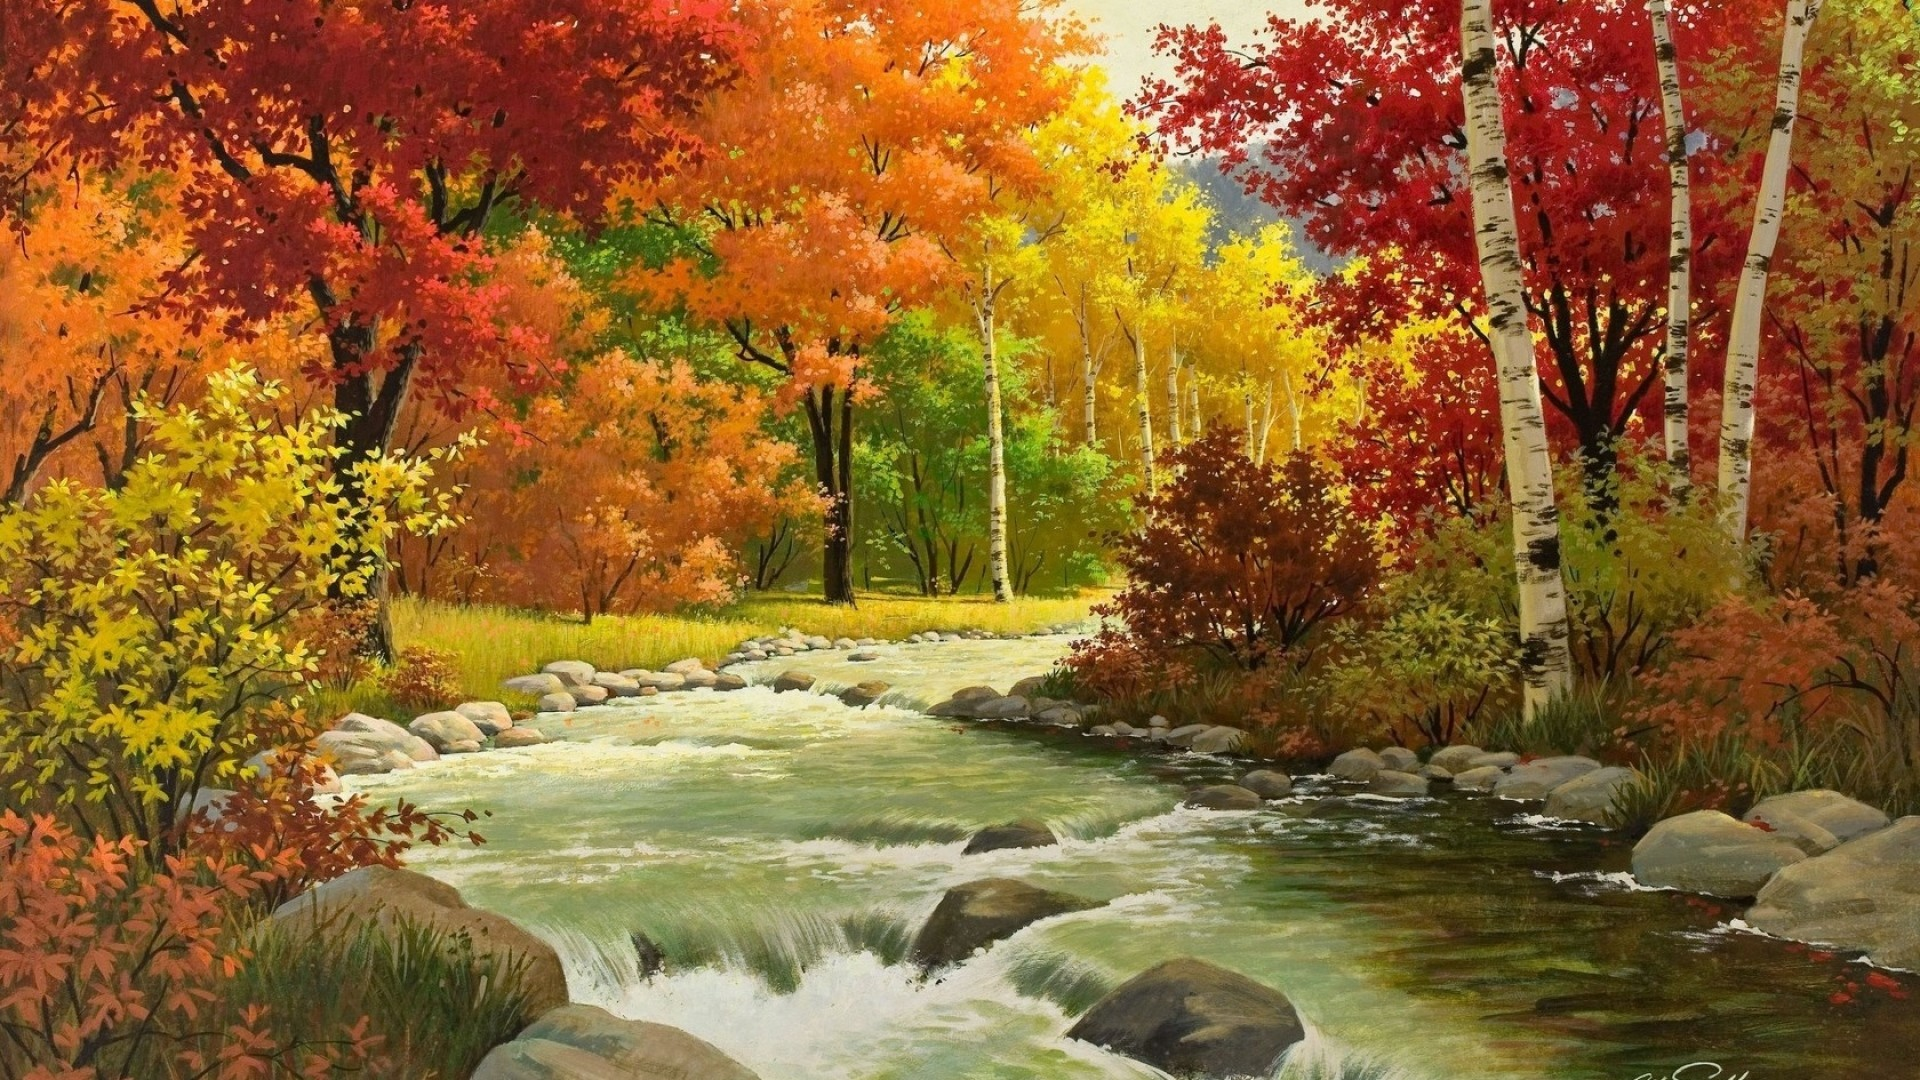 … Background Full HD 1080p. Wallpaper autumn, landscape,  painting, river, wood